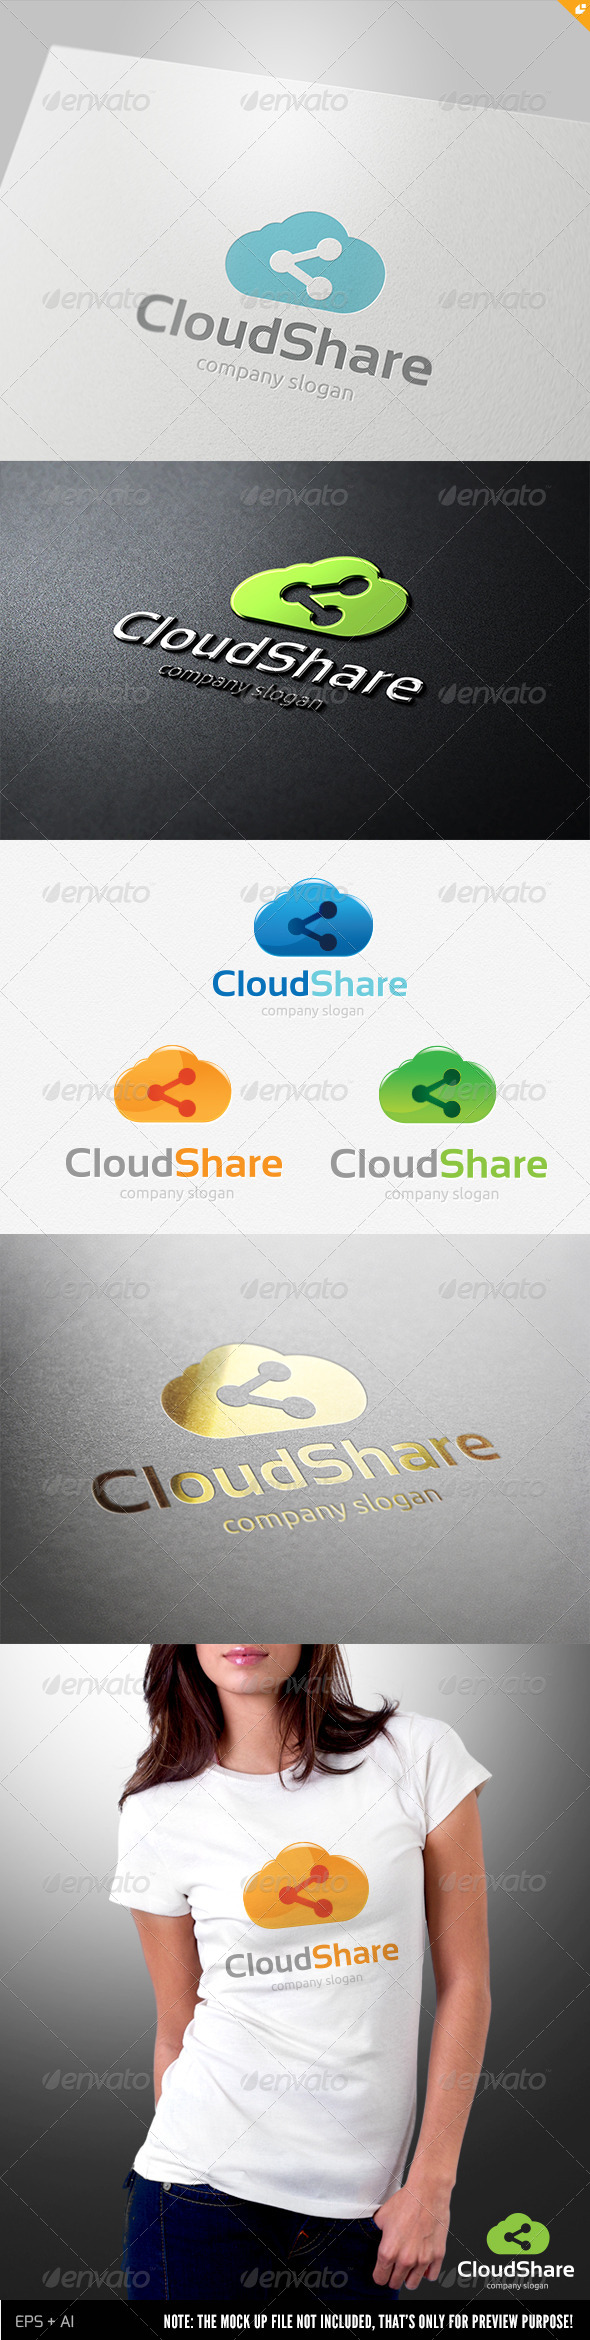 Cloud Share Logo - Nature Logo Templates